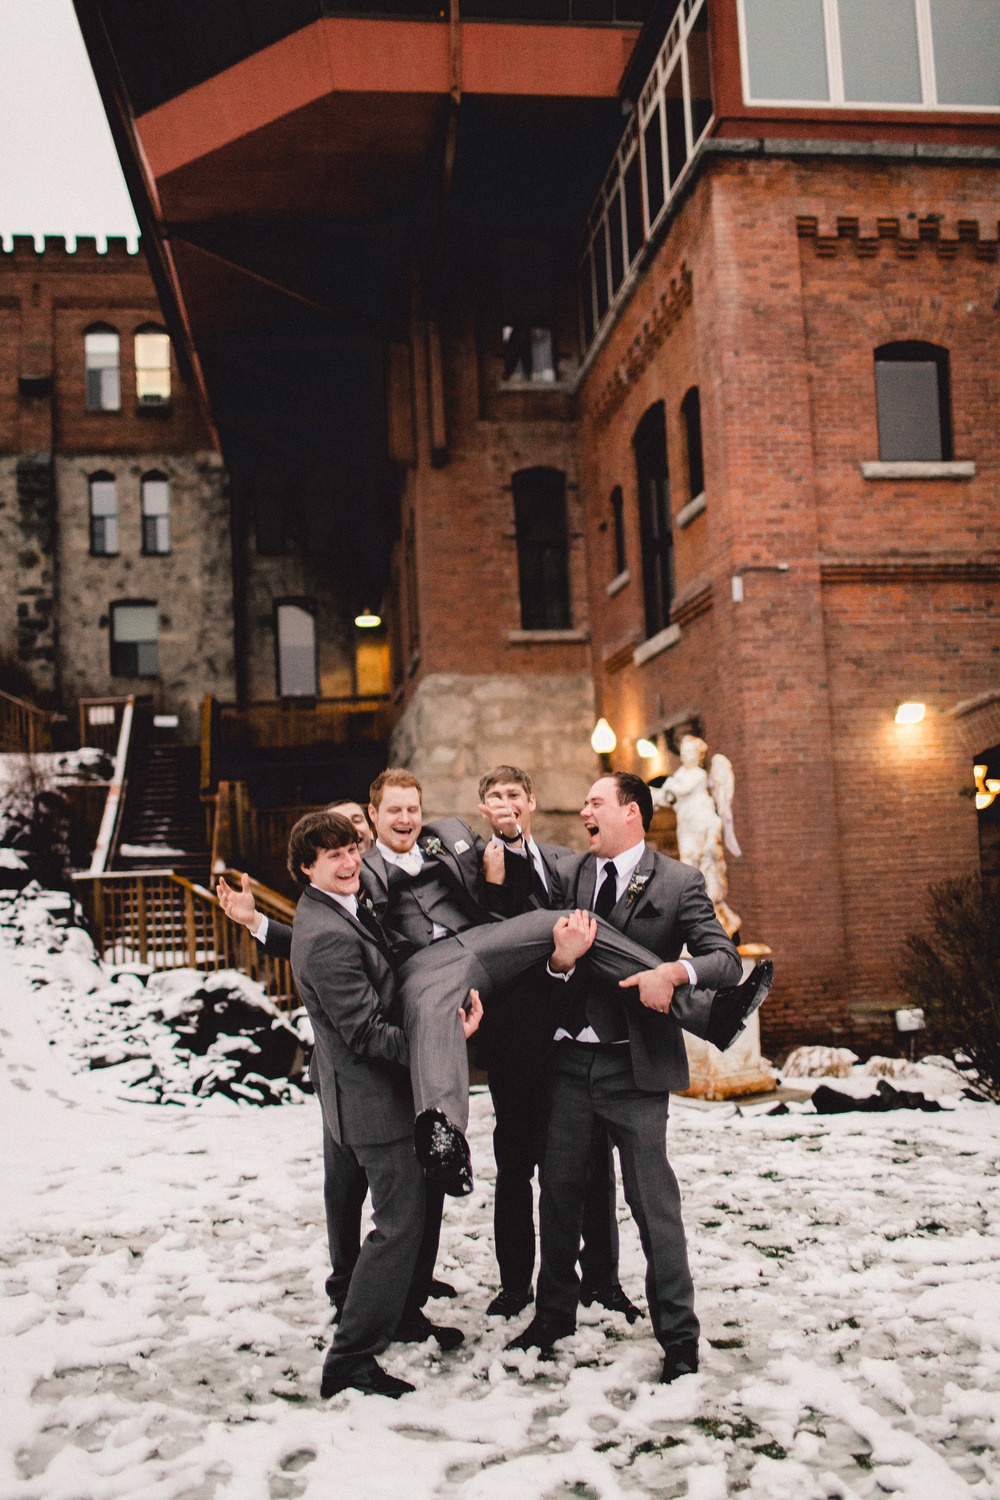 mayden photography spokane wedding-30.jpg